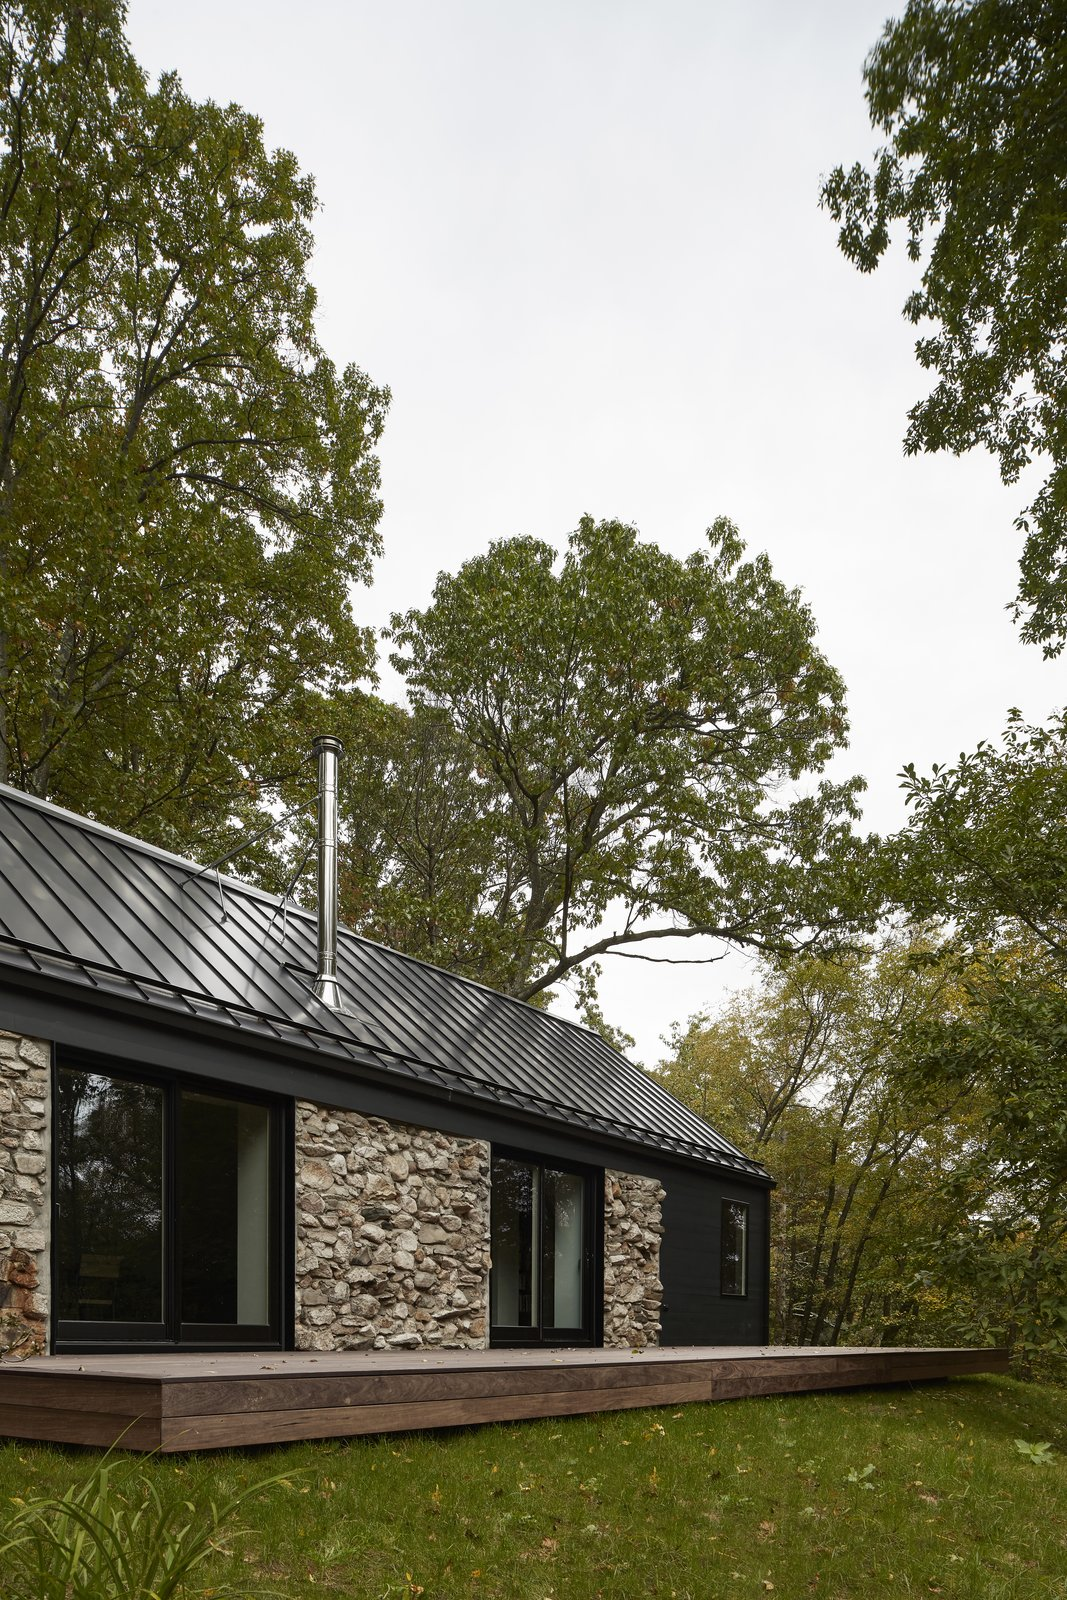 Exterior, Cabin Building Type, House Building Type, Metal Roof Material, Stone Siding Material, Gable RoofLine, and Wood Siding Material  Photo 2 of 13 in A Minimalist Retreat Rises From Old Stone Walls in Hudson Valley